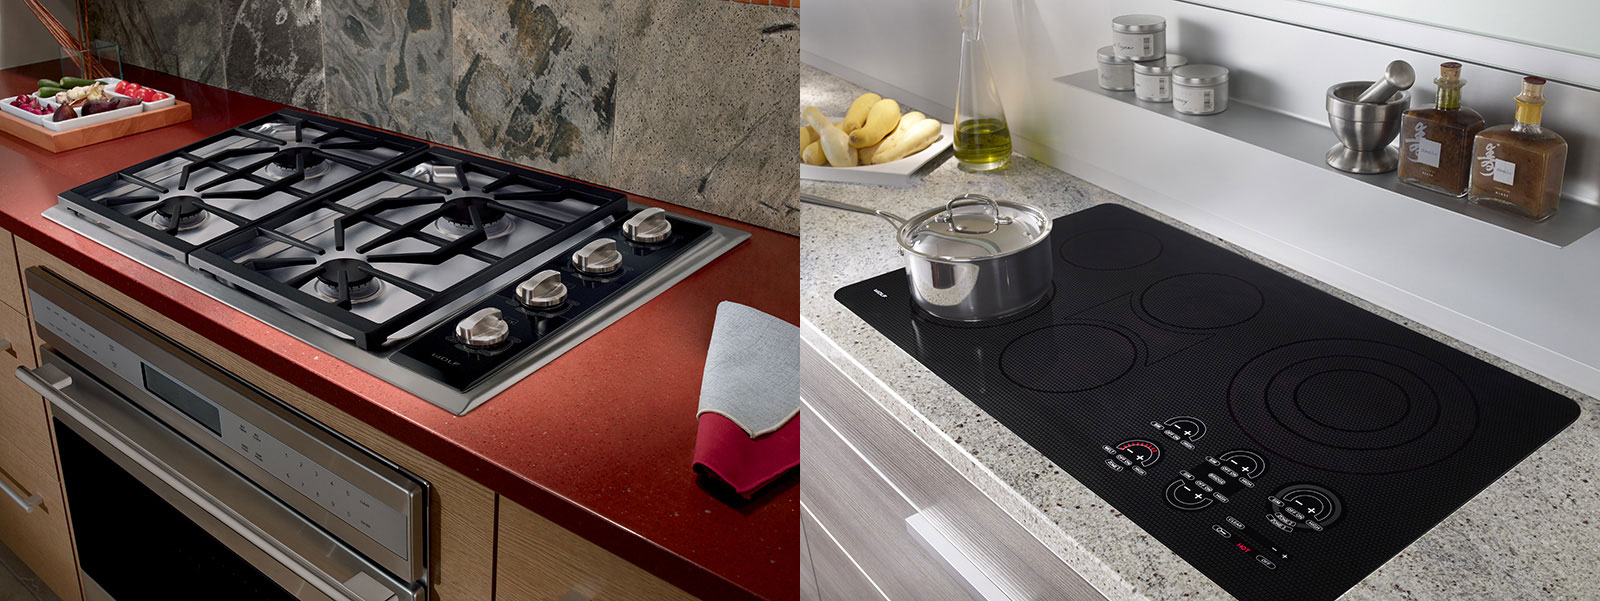 Blog - Cooktop Showdown: Gas vs. Electric Stove Tops | Atherton ...